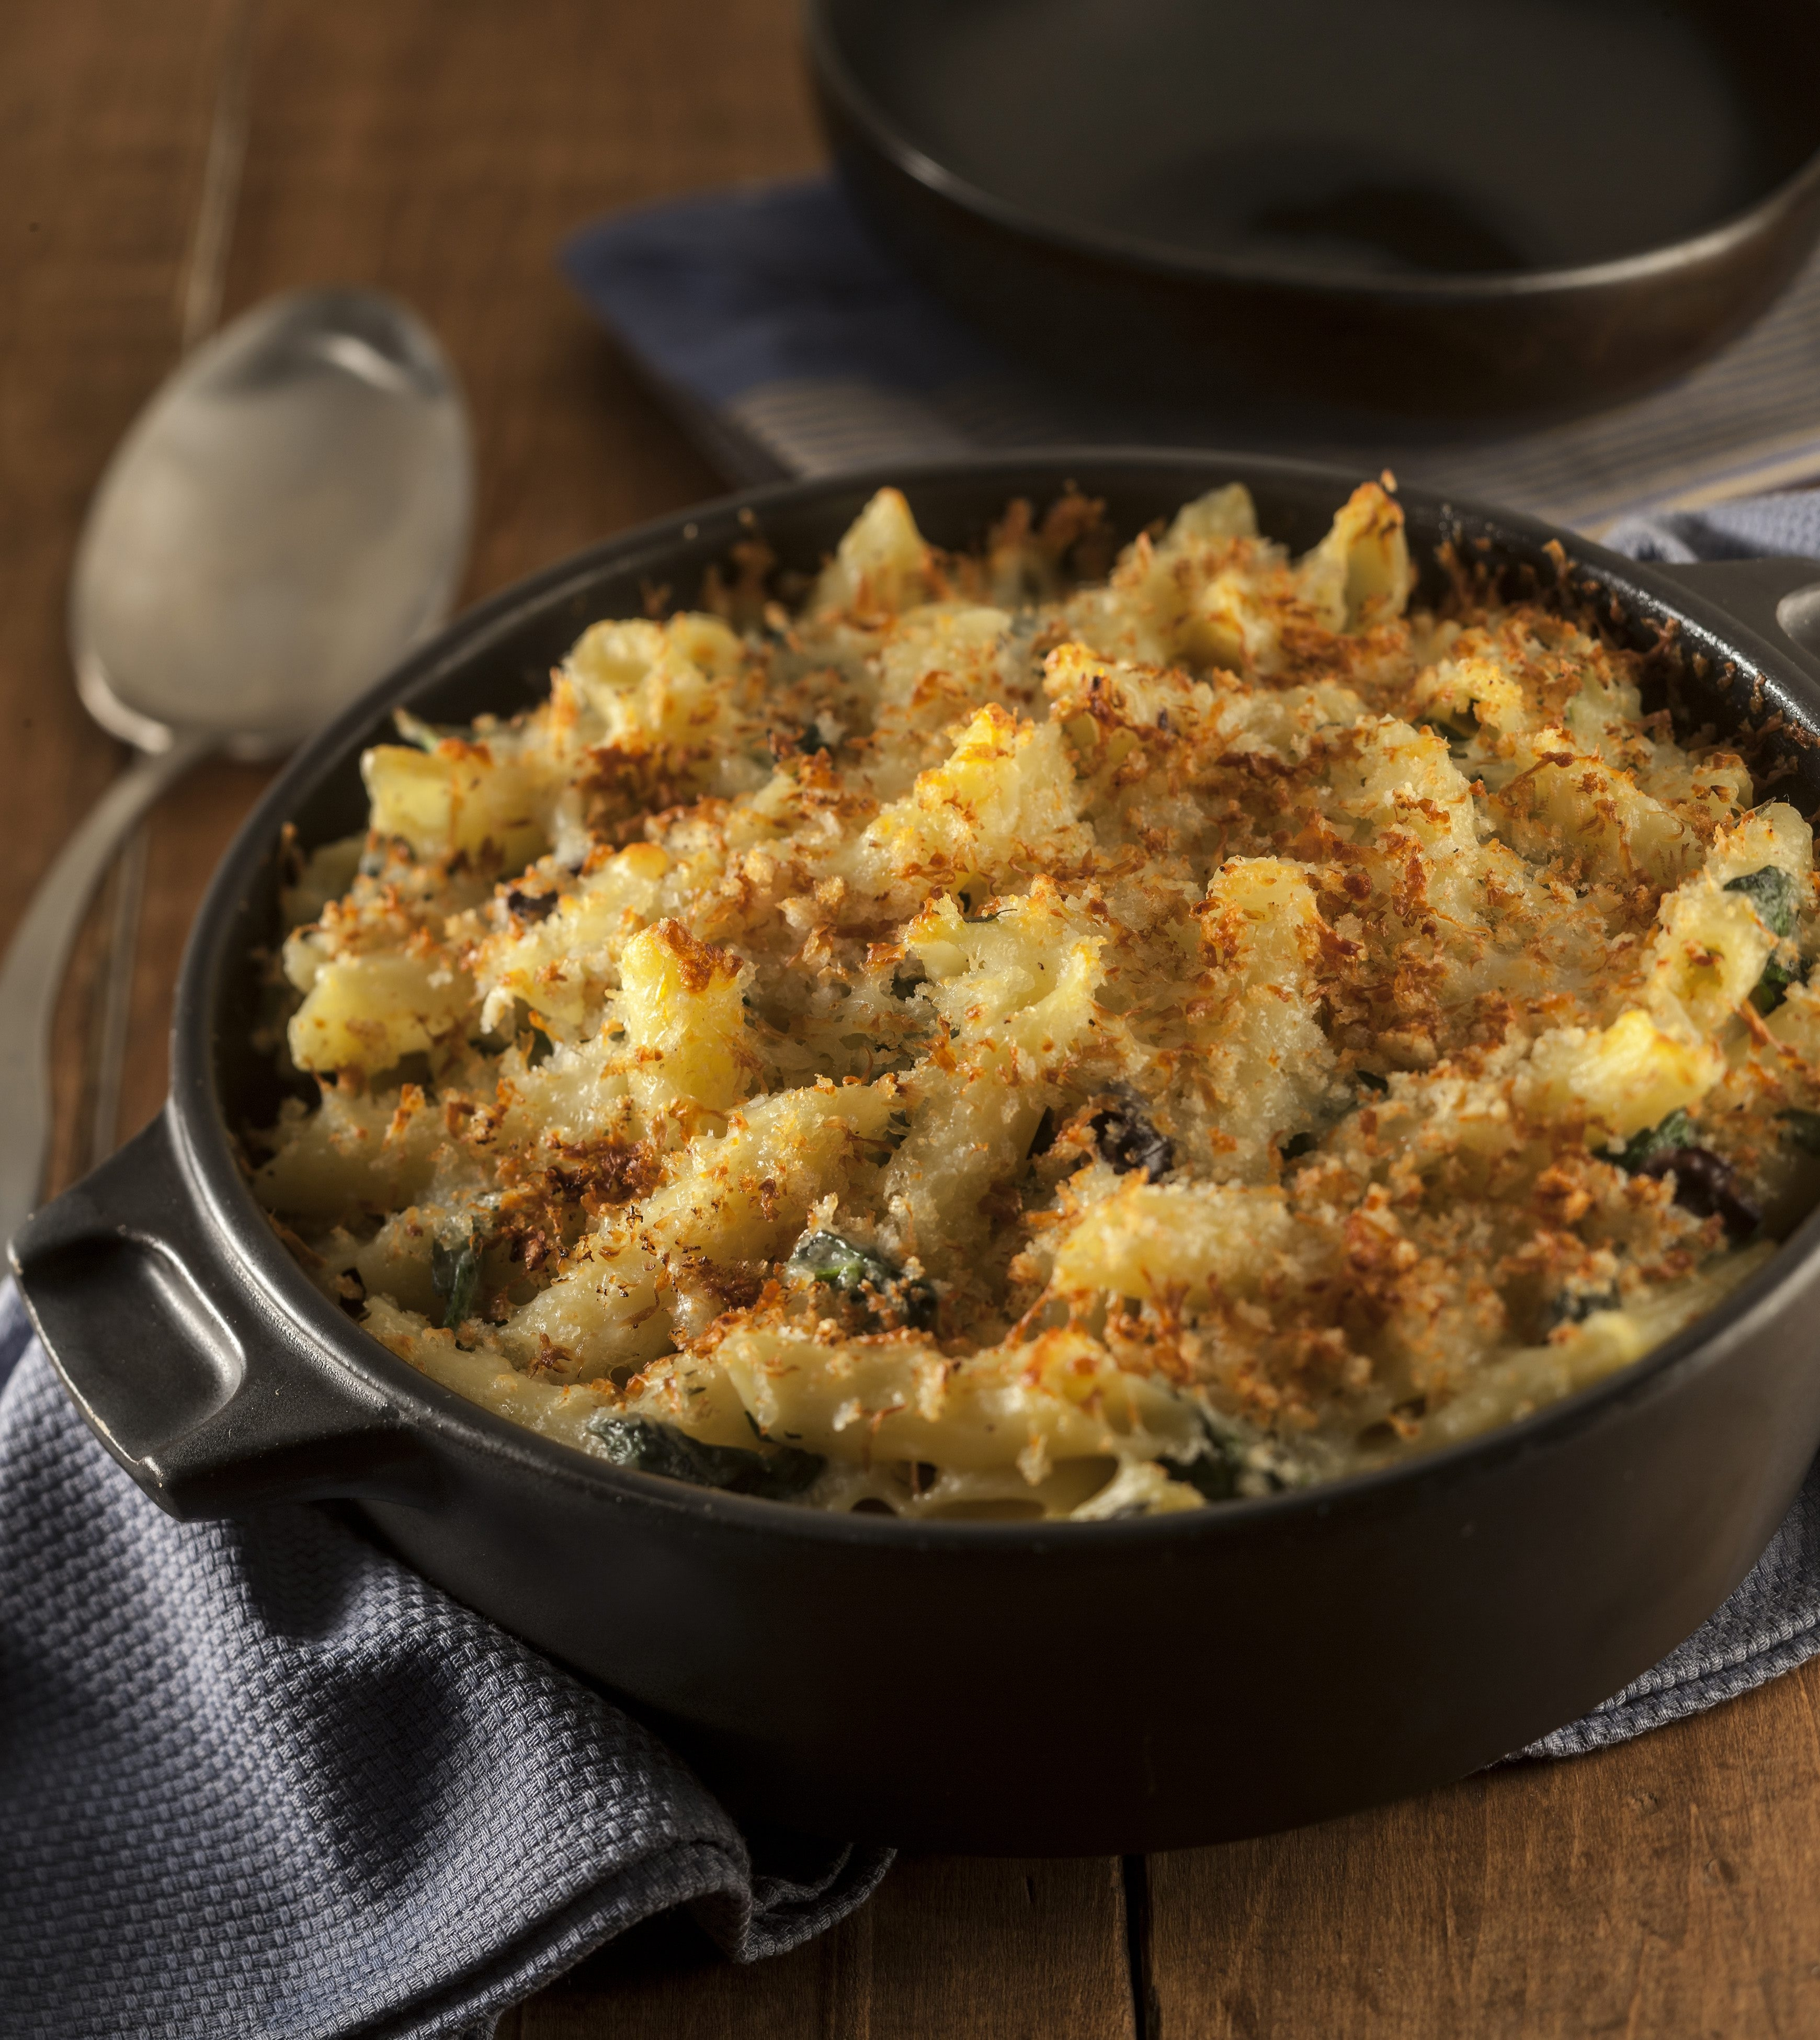 Mac and cheese is all about technique. The key elements of that technique are cooking the pasta to the proper doneness and stirring up a smooth sauce, says Ellen Brown, cookbook author, food columnist and former USA Today food editor. (Bill Hogan/Chicago Tribune/MCT)